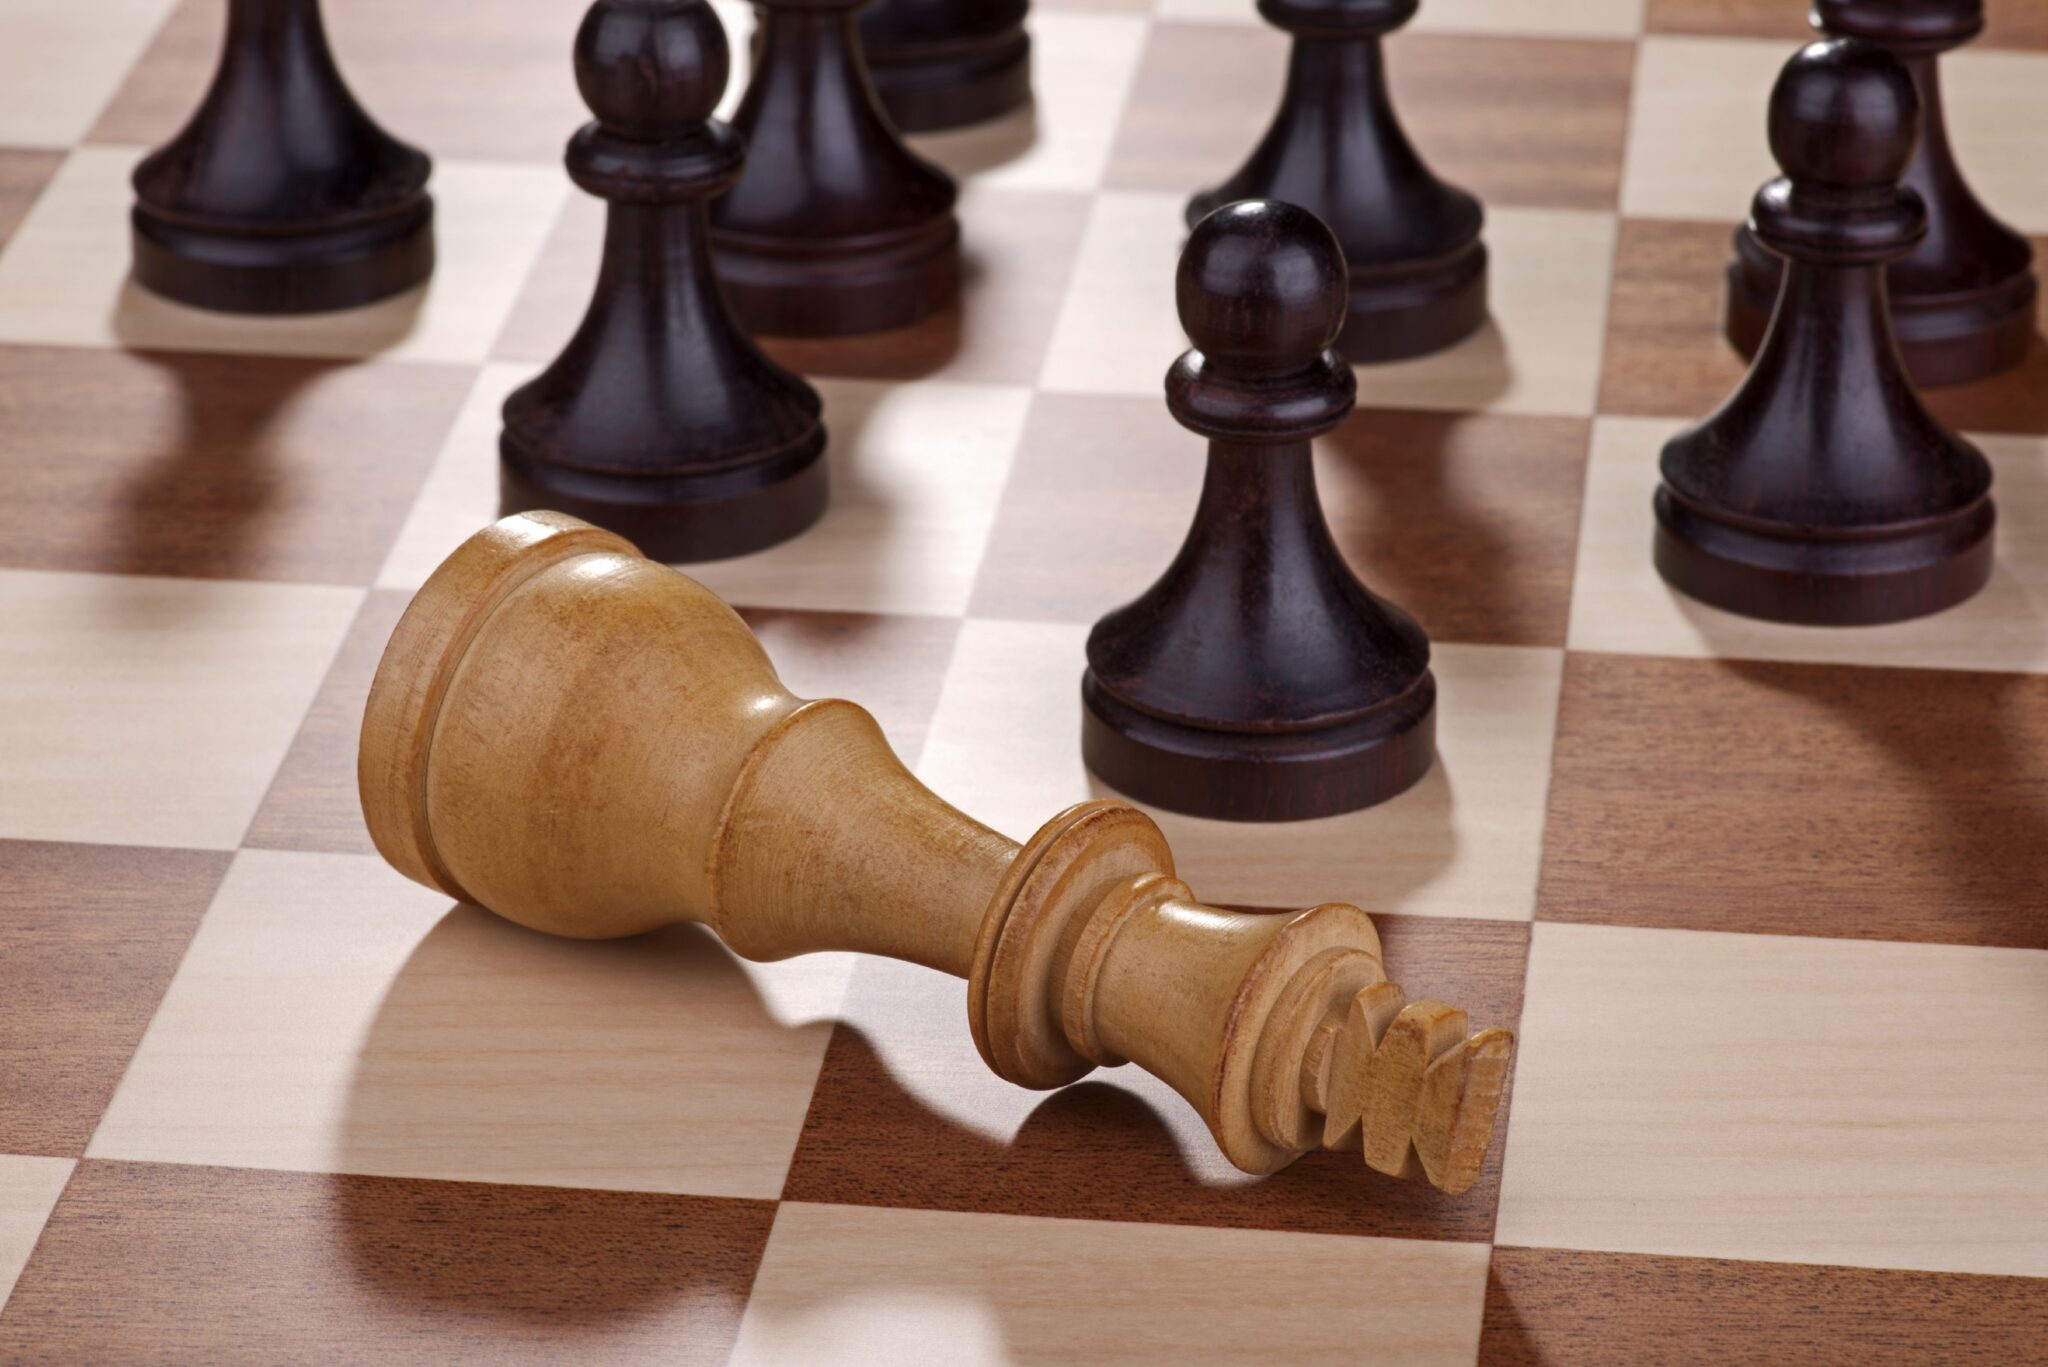 Leadership speakers and authors, Bob Vanourek and Gregg Vanourek, use a picture of a chess king laying on it's side to illustrate the falling of a great leader.